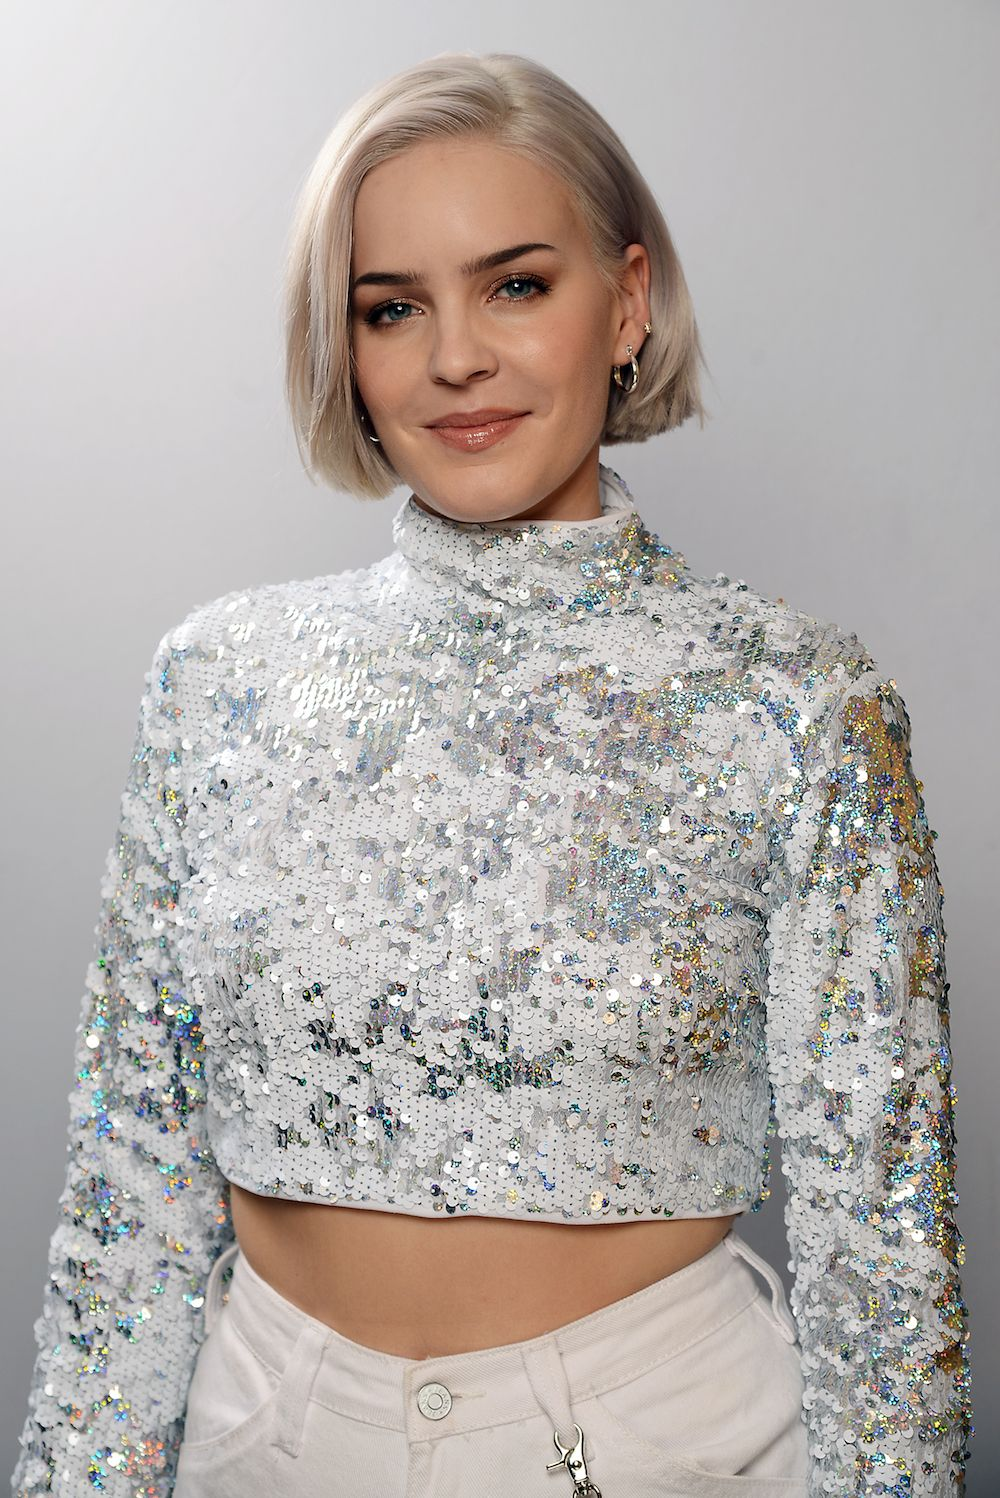 British Pop Star Anne-Marie on Her Career and Success